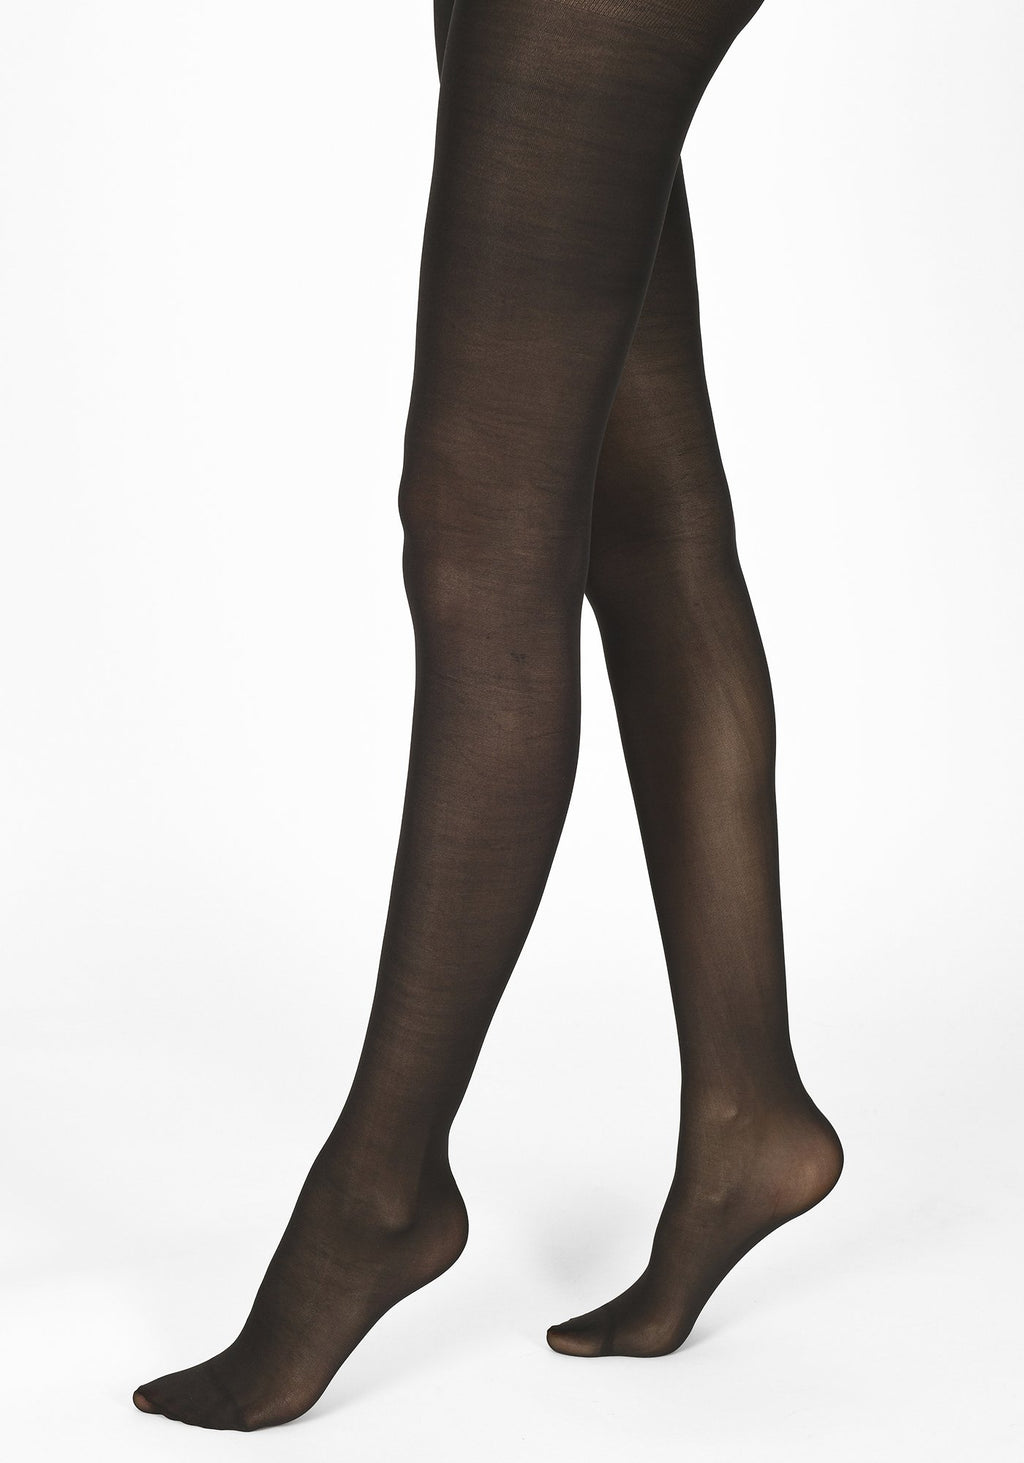 black tights 40 denier 1